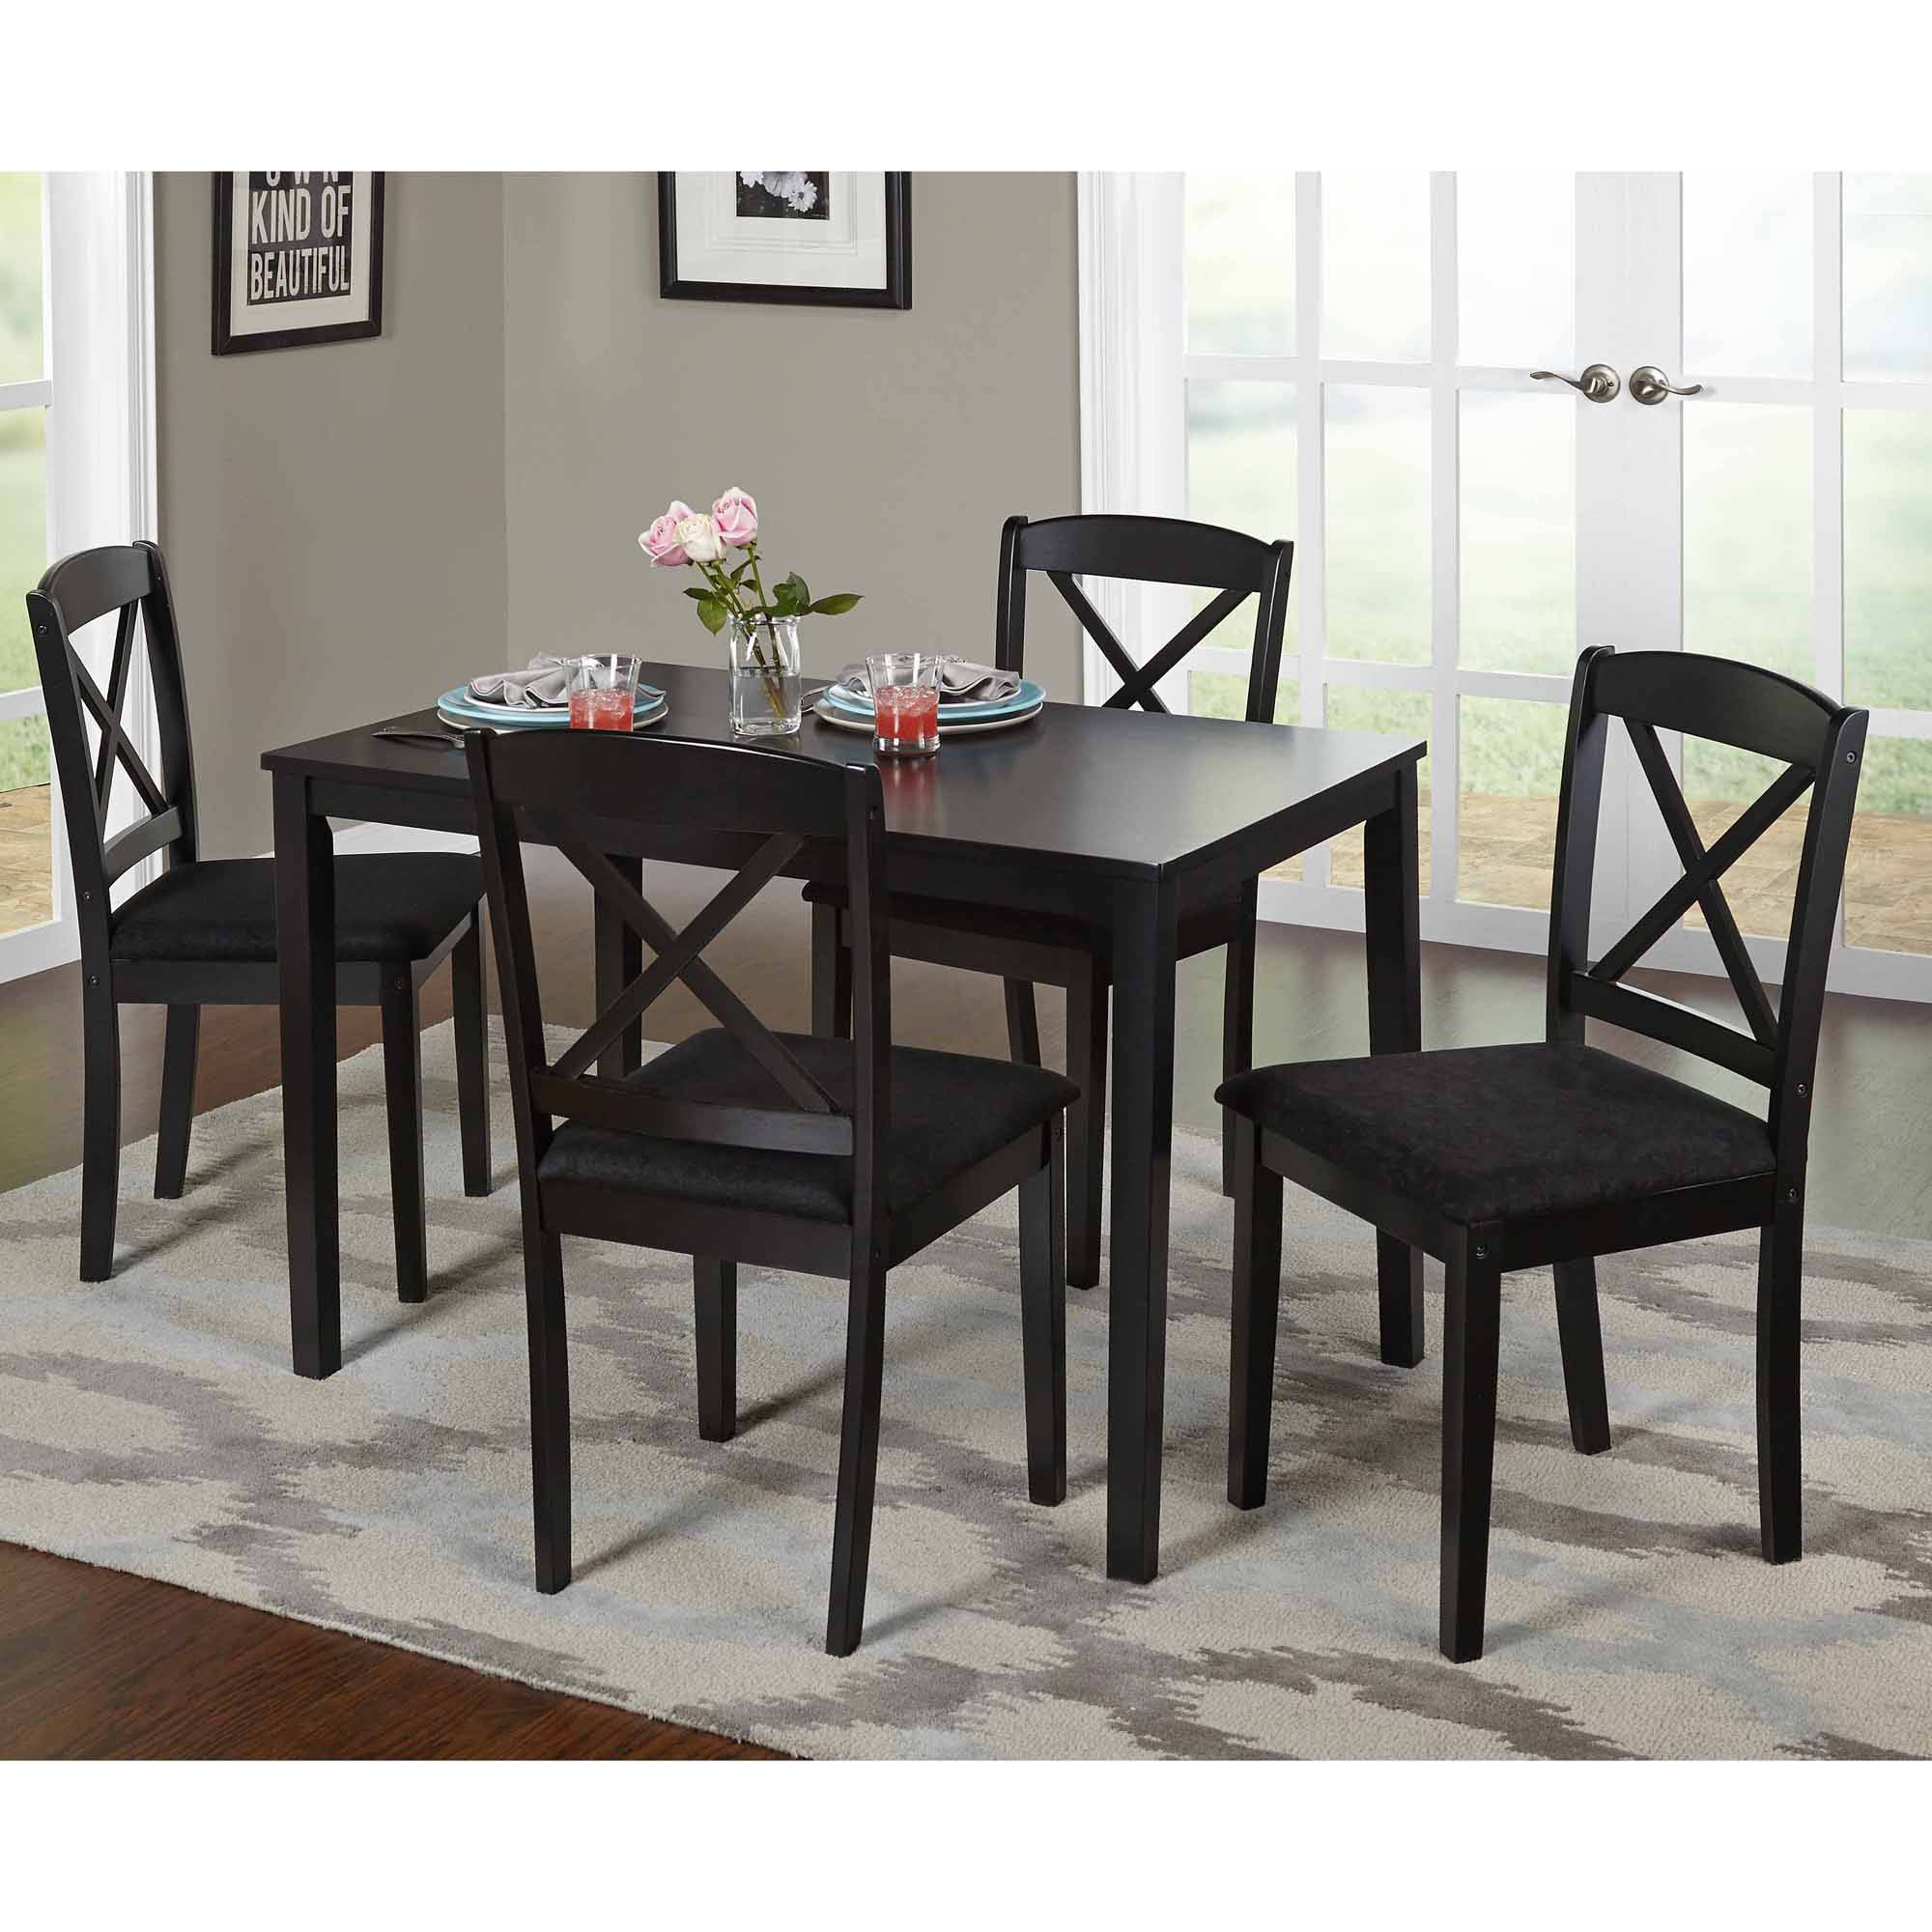 Cheap 5 Piece Dining Set: TMS Mason 5-Piece Cross Back Dining Set, Multiple Colors